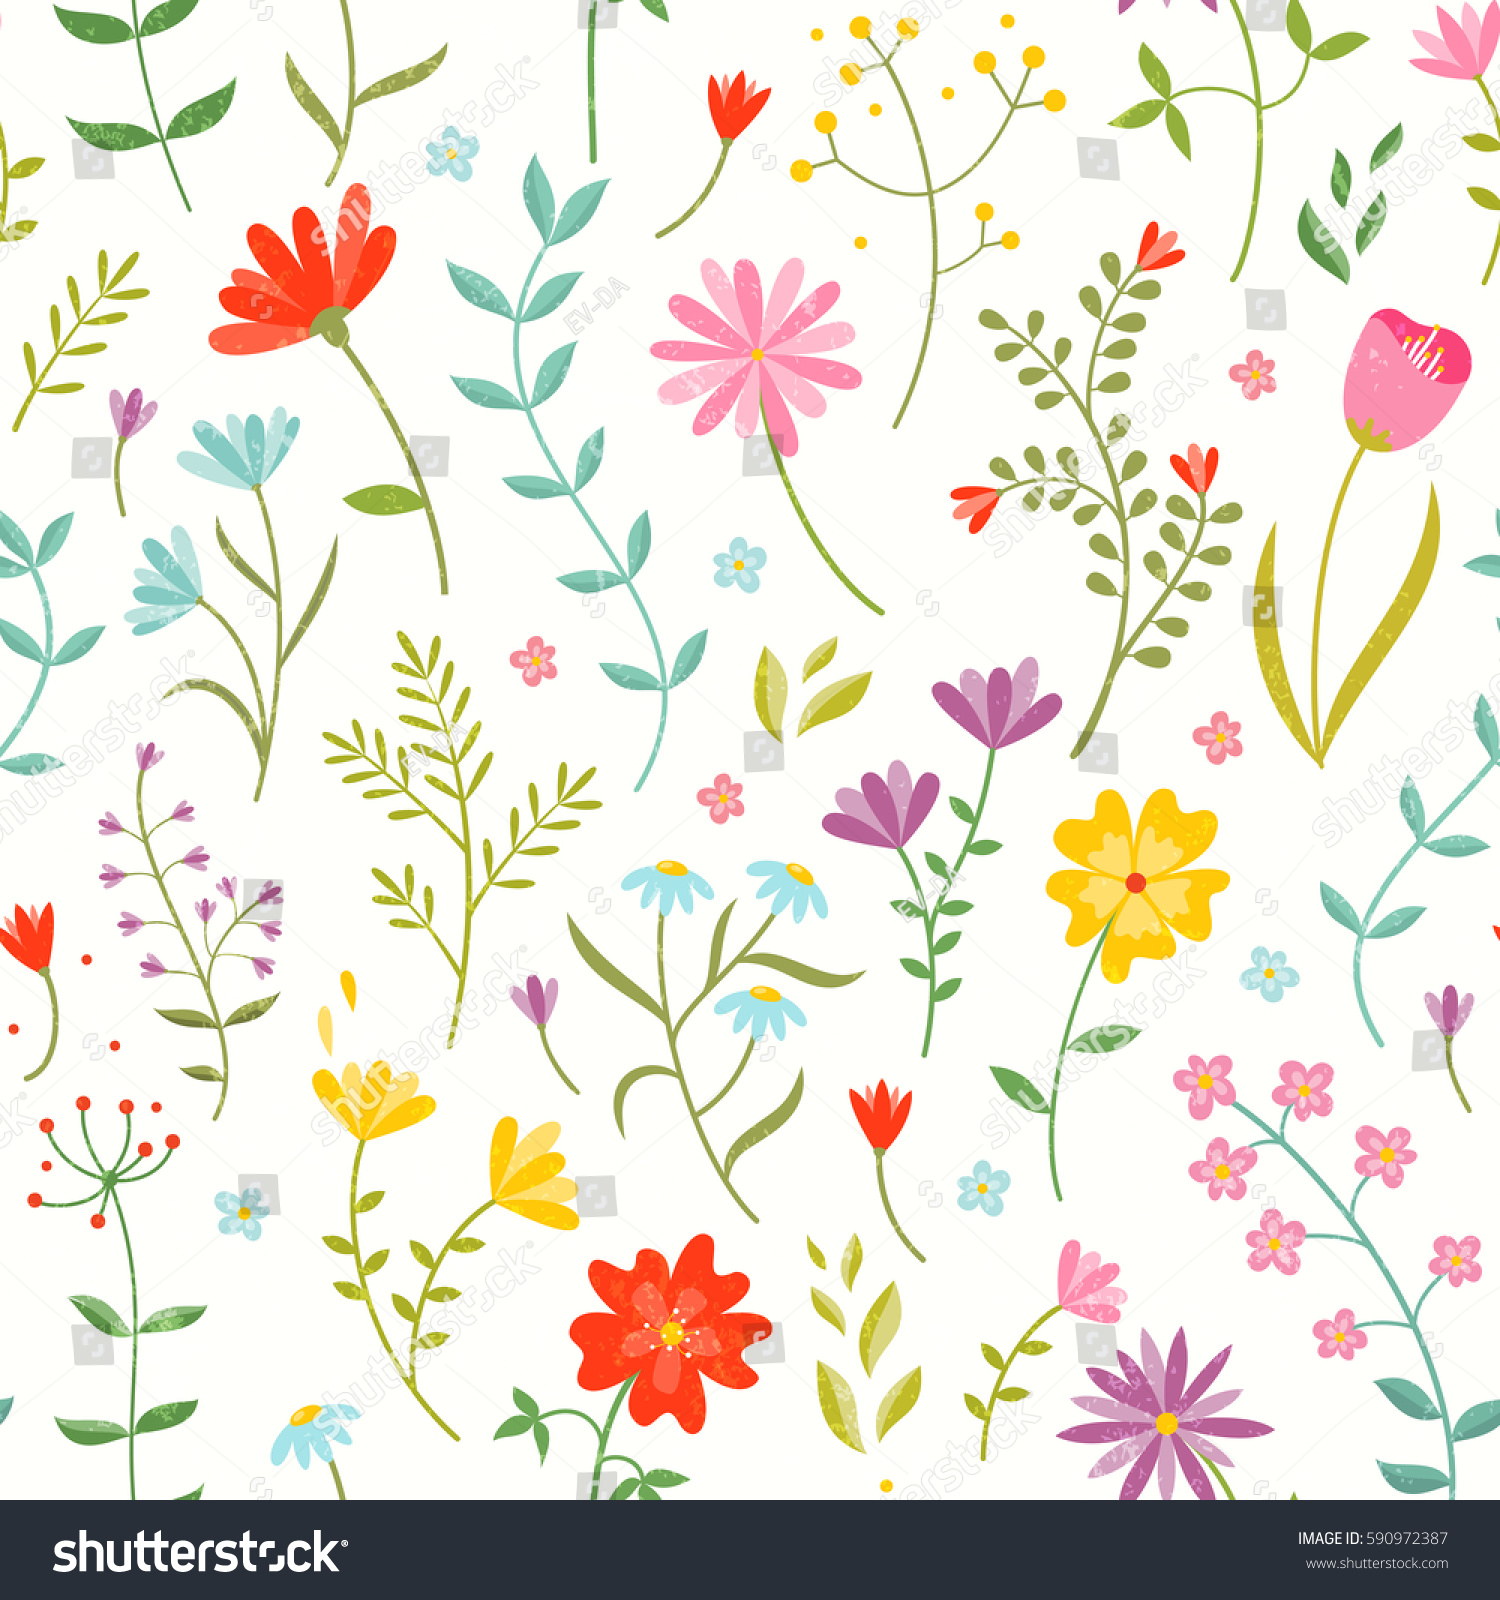 Cute Seamless Floral Print Spring Flowers Stock Vector (Royalty Free ...